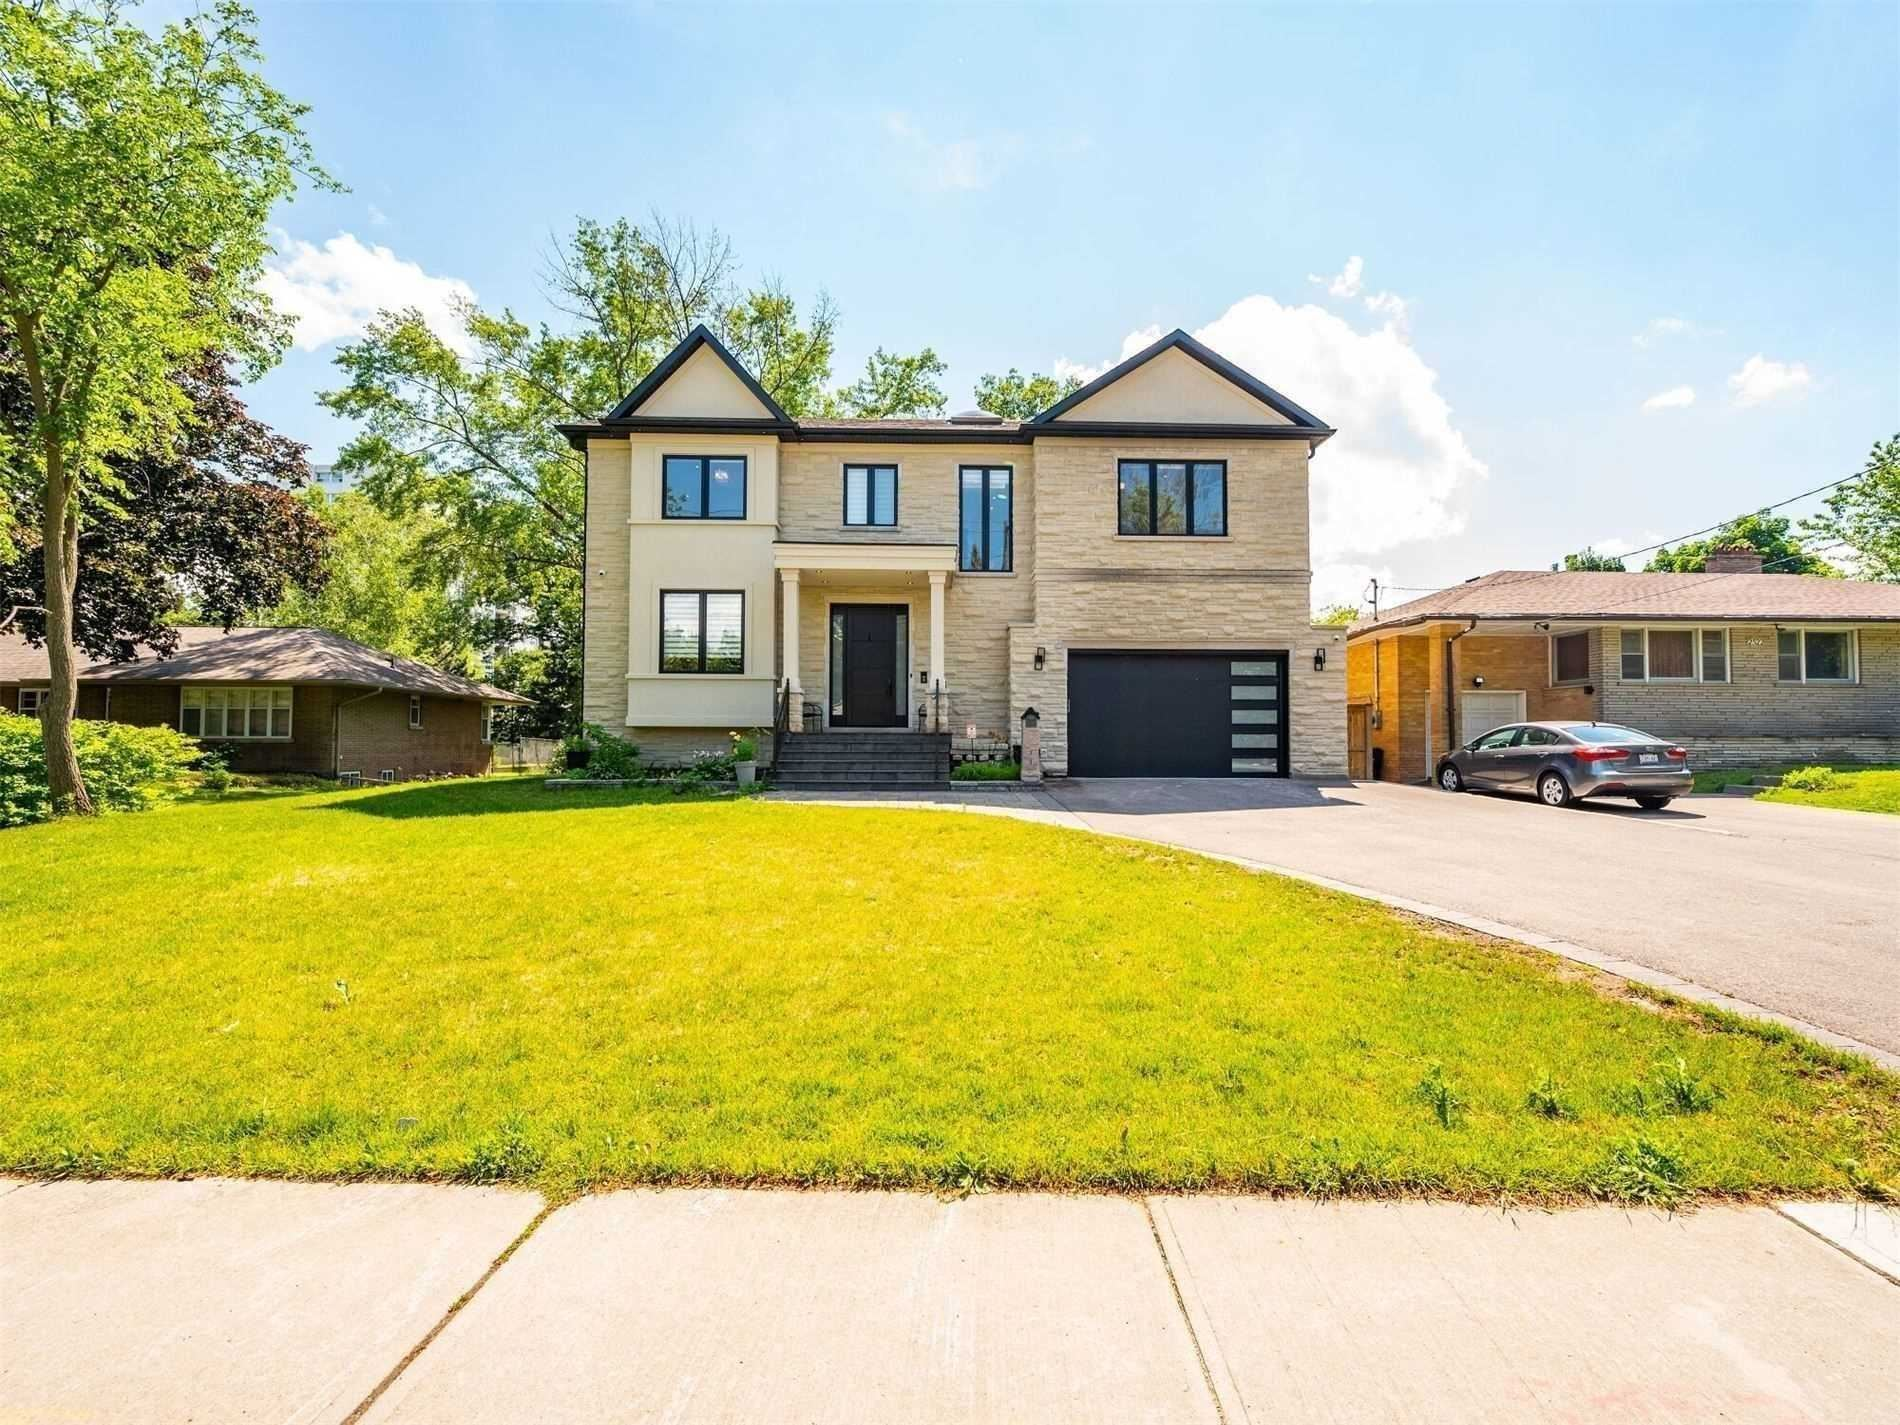 2514 Shepard Ave, Mississauga, ON L5A2H6 - MLS#: W5382148